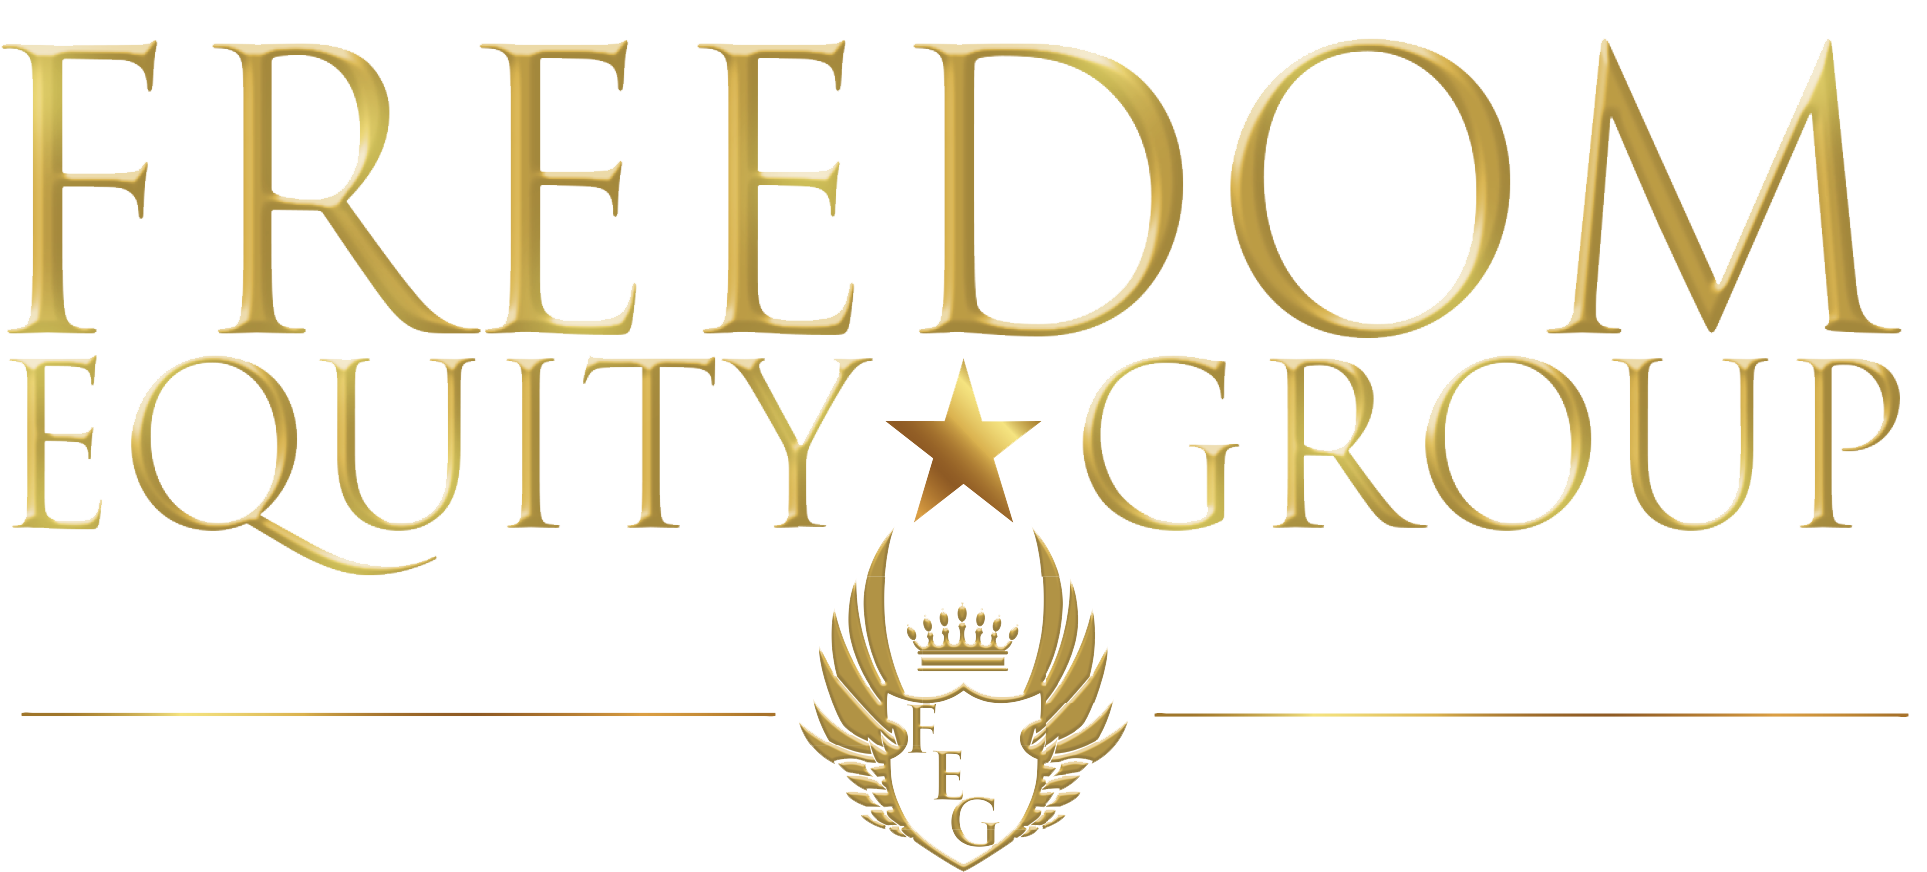 FEG_Gold_Beveled-LOGO.png